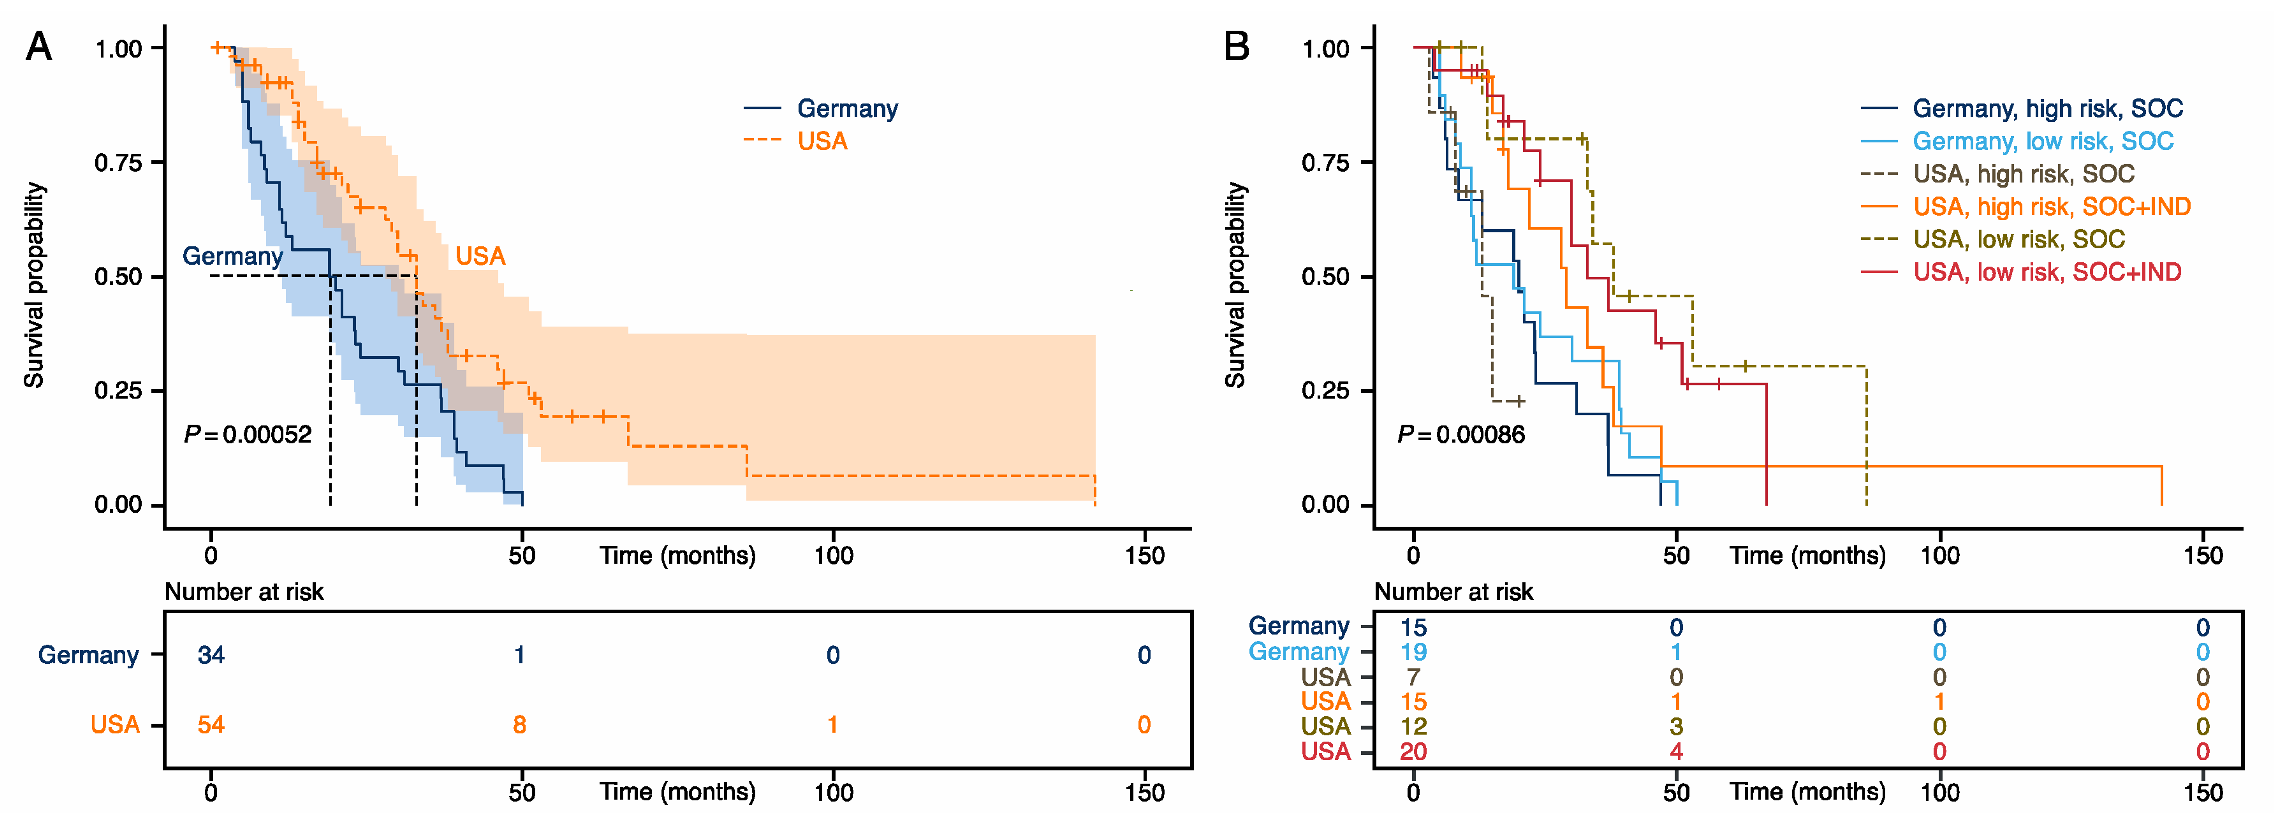 Cancers Free Full Text Stage Iv Colorectal Cancer Patients With High Risk Mutation Profiles Survived 16 Months Longer With Individualized Therapies Html